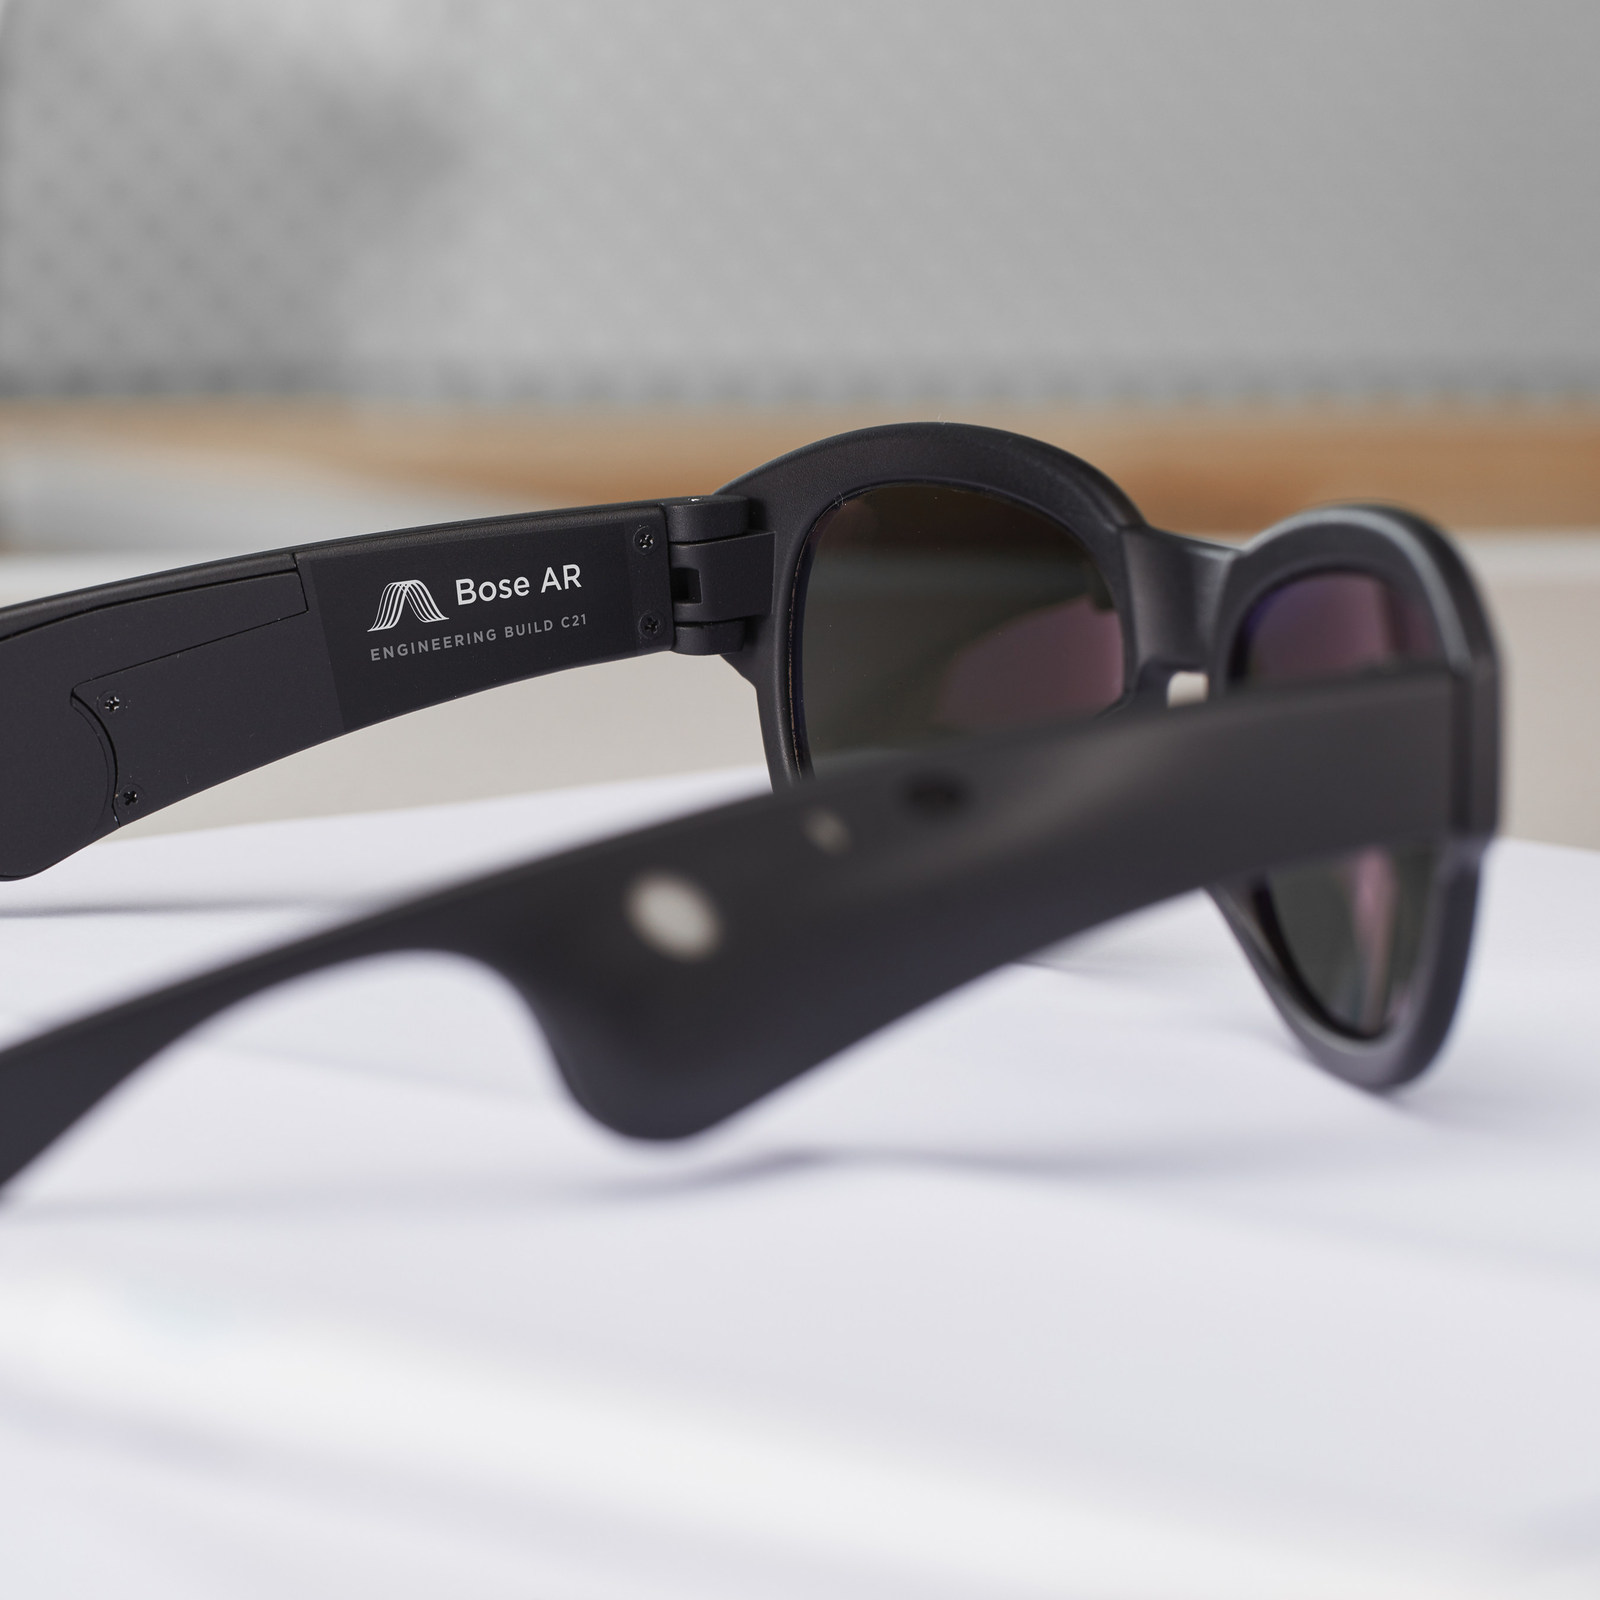 Bose working on augmented reality glasses that are everything Google Glass isn't